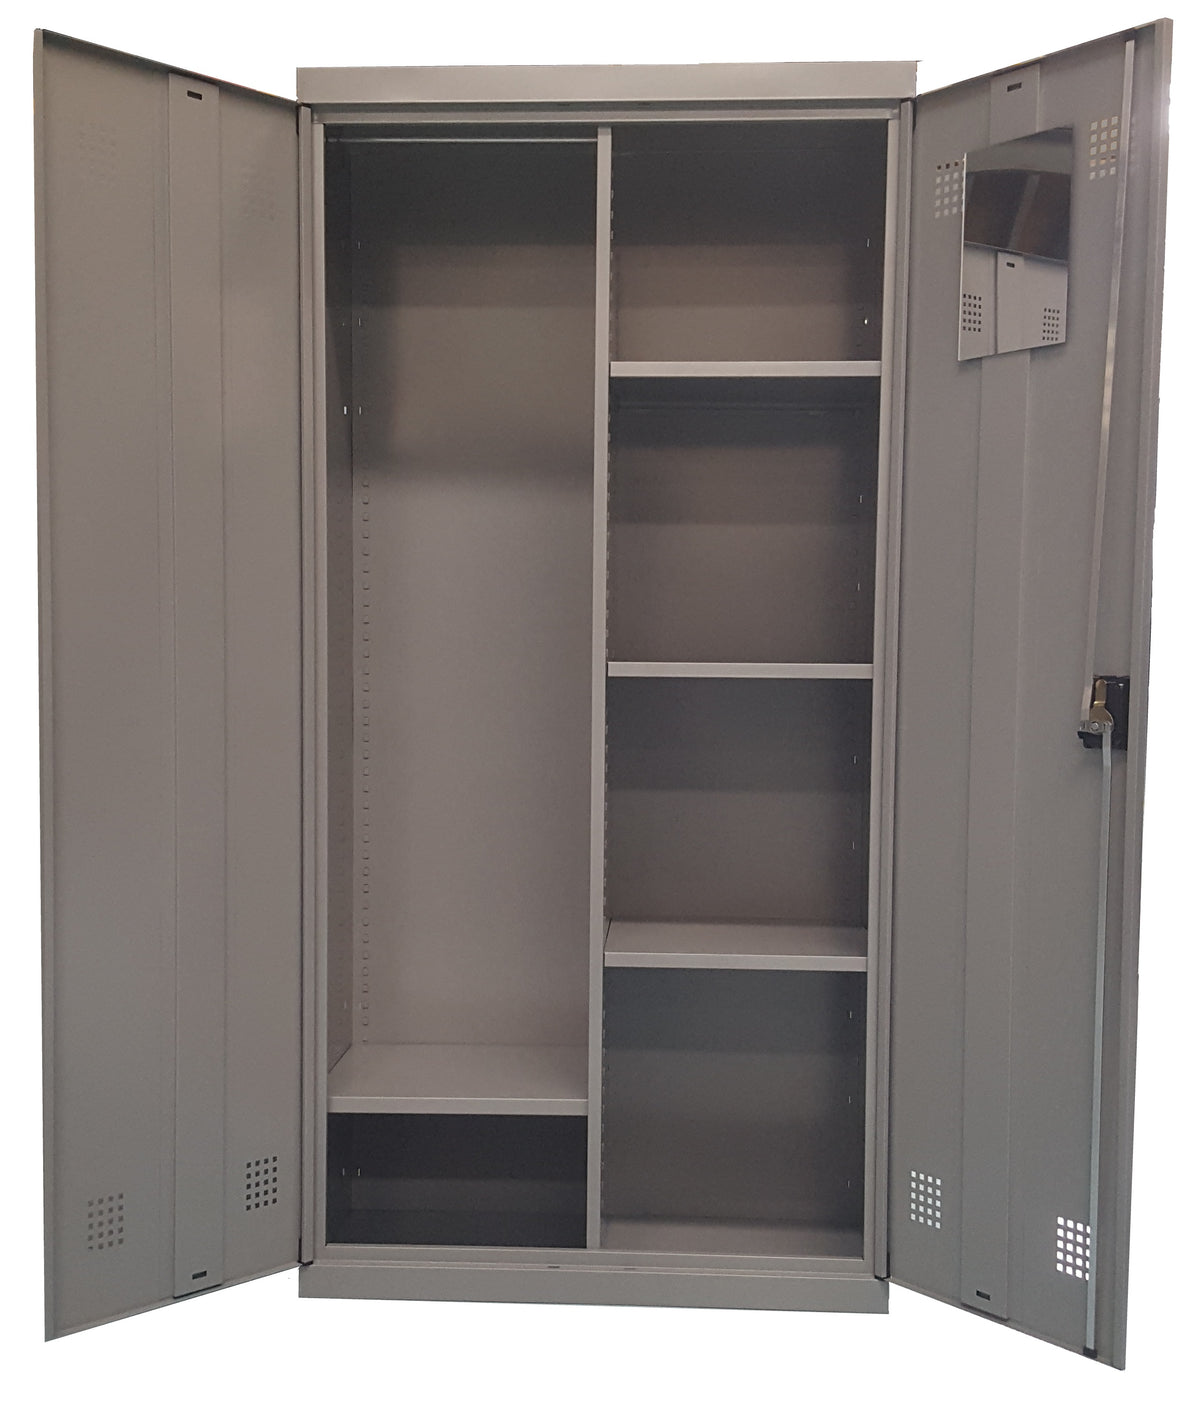 STATEWIDE EXECUTIVE CUPBOARD